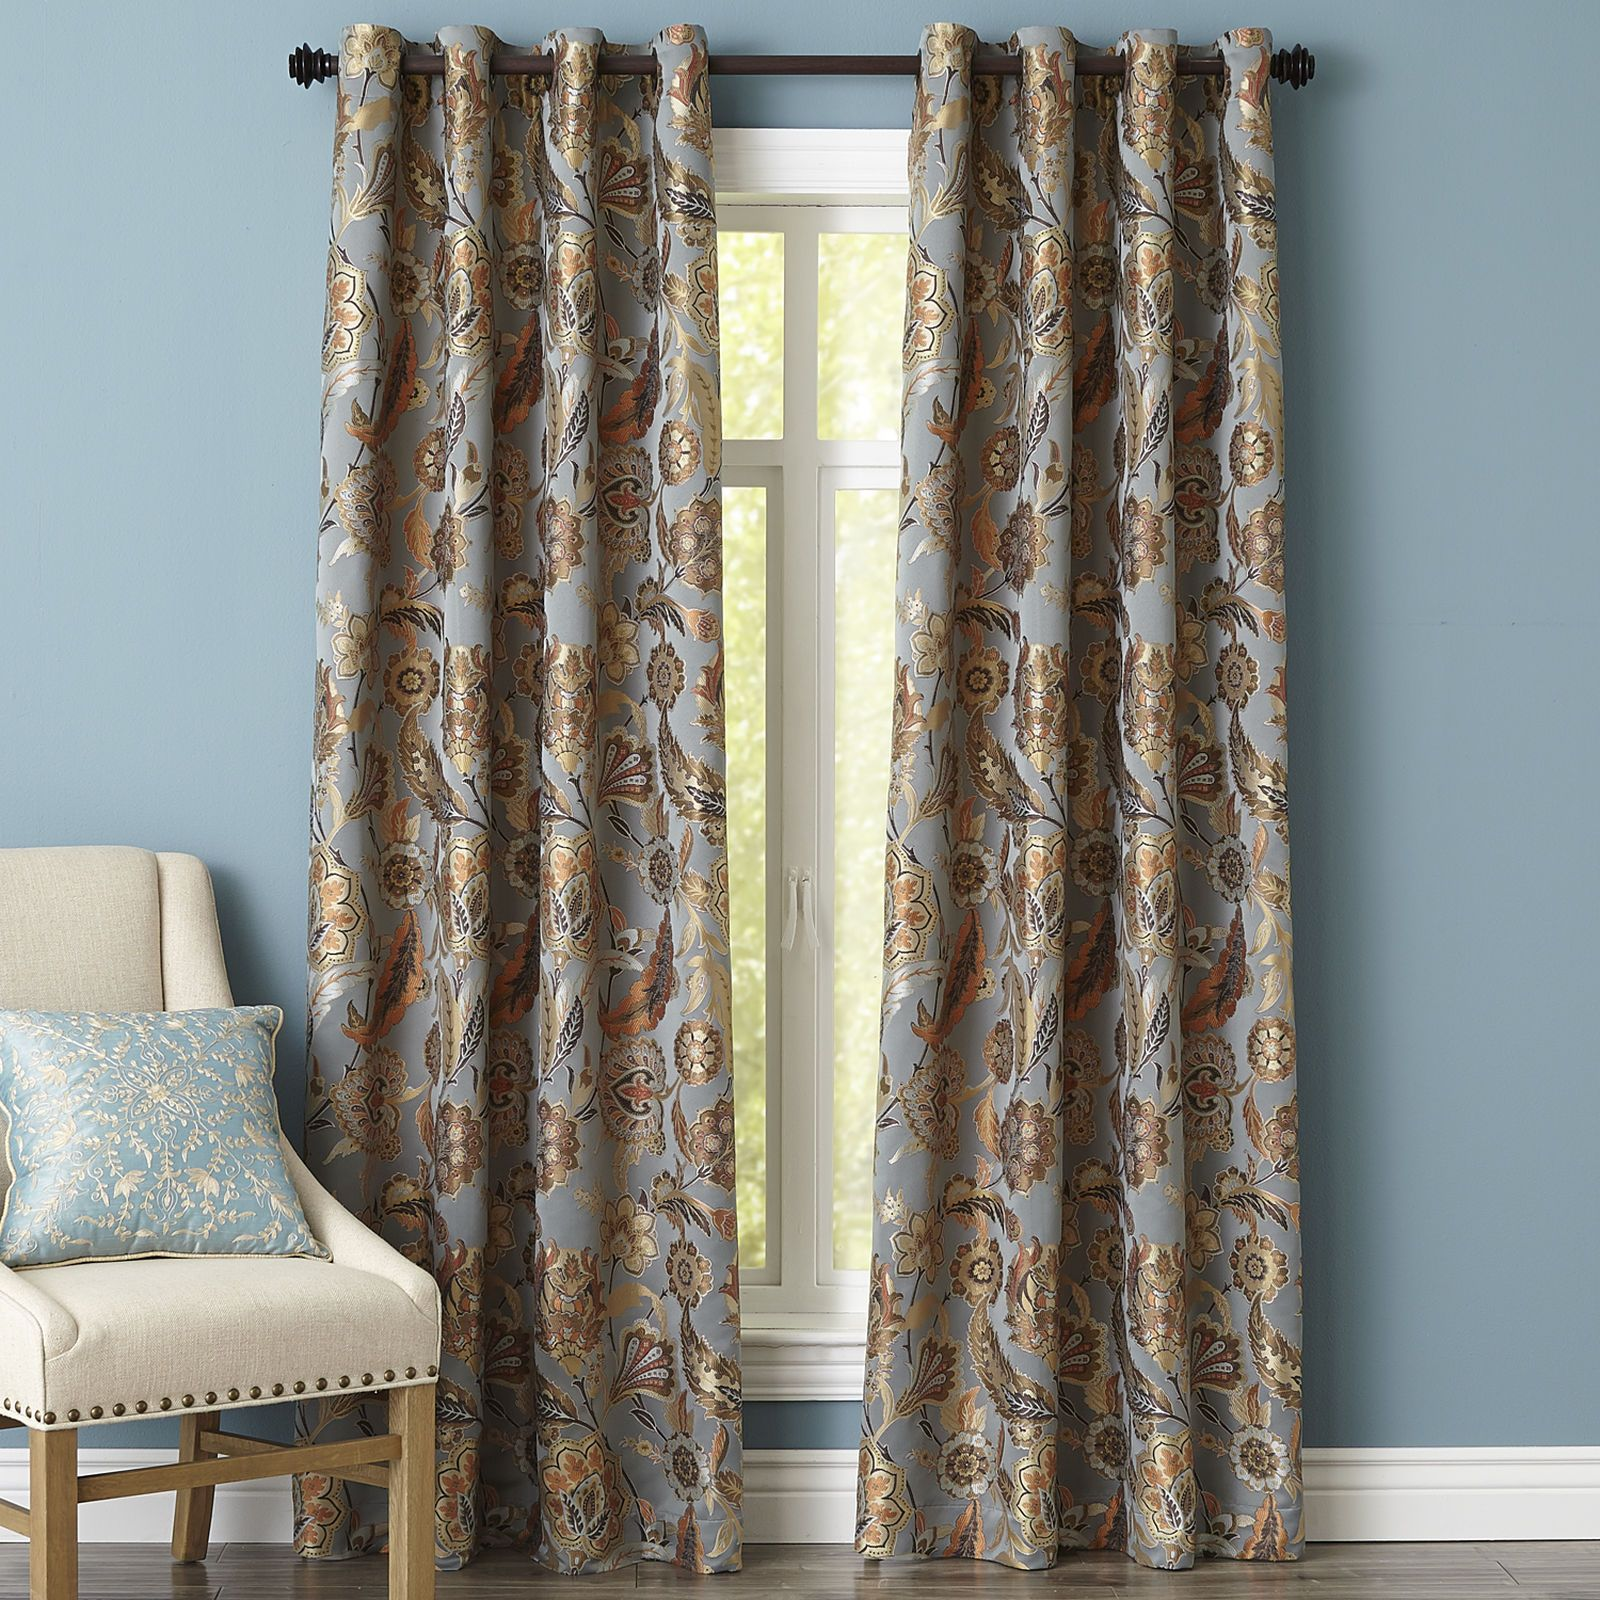 Woven jacquard highlights the details of this classic floral pattern. A smoky blue background shines with shades of gold, burnt orange and neutral wheat tones.